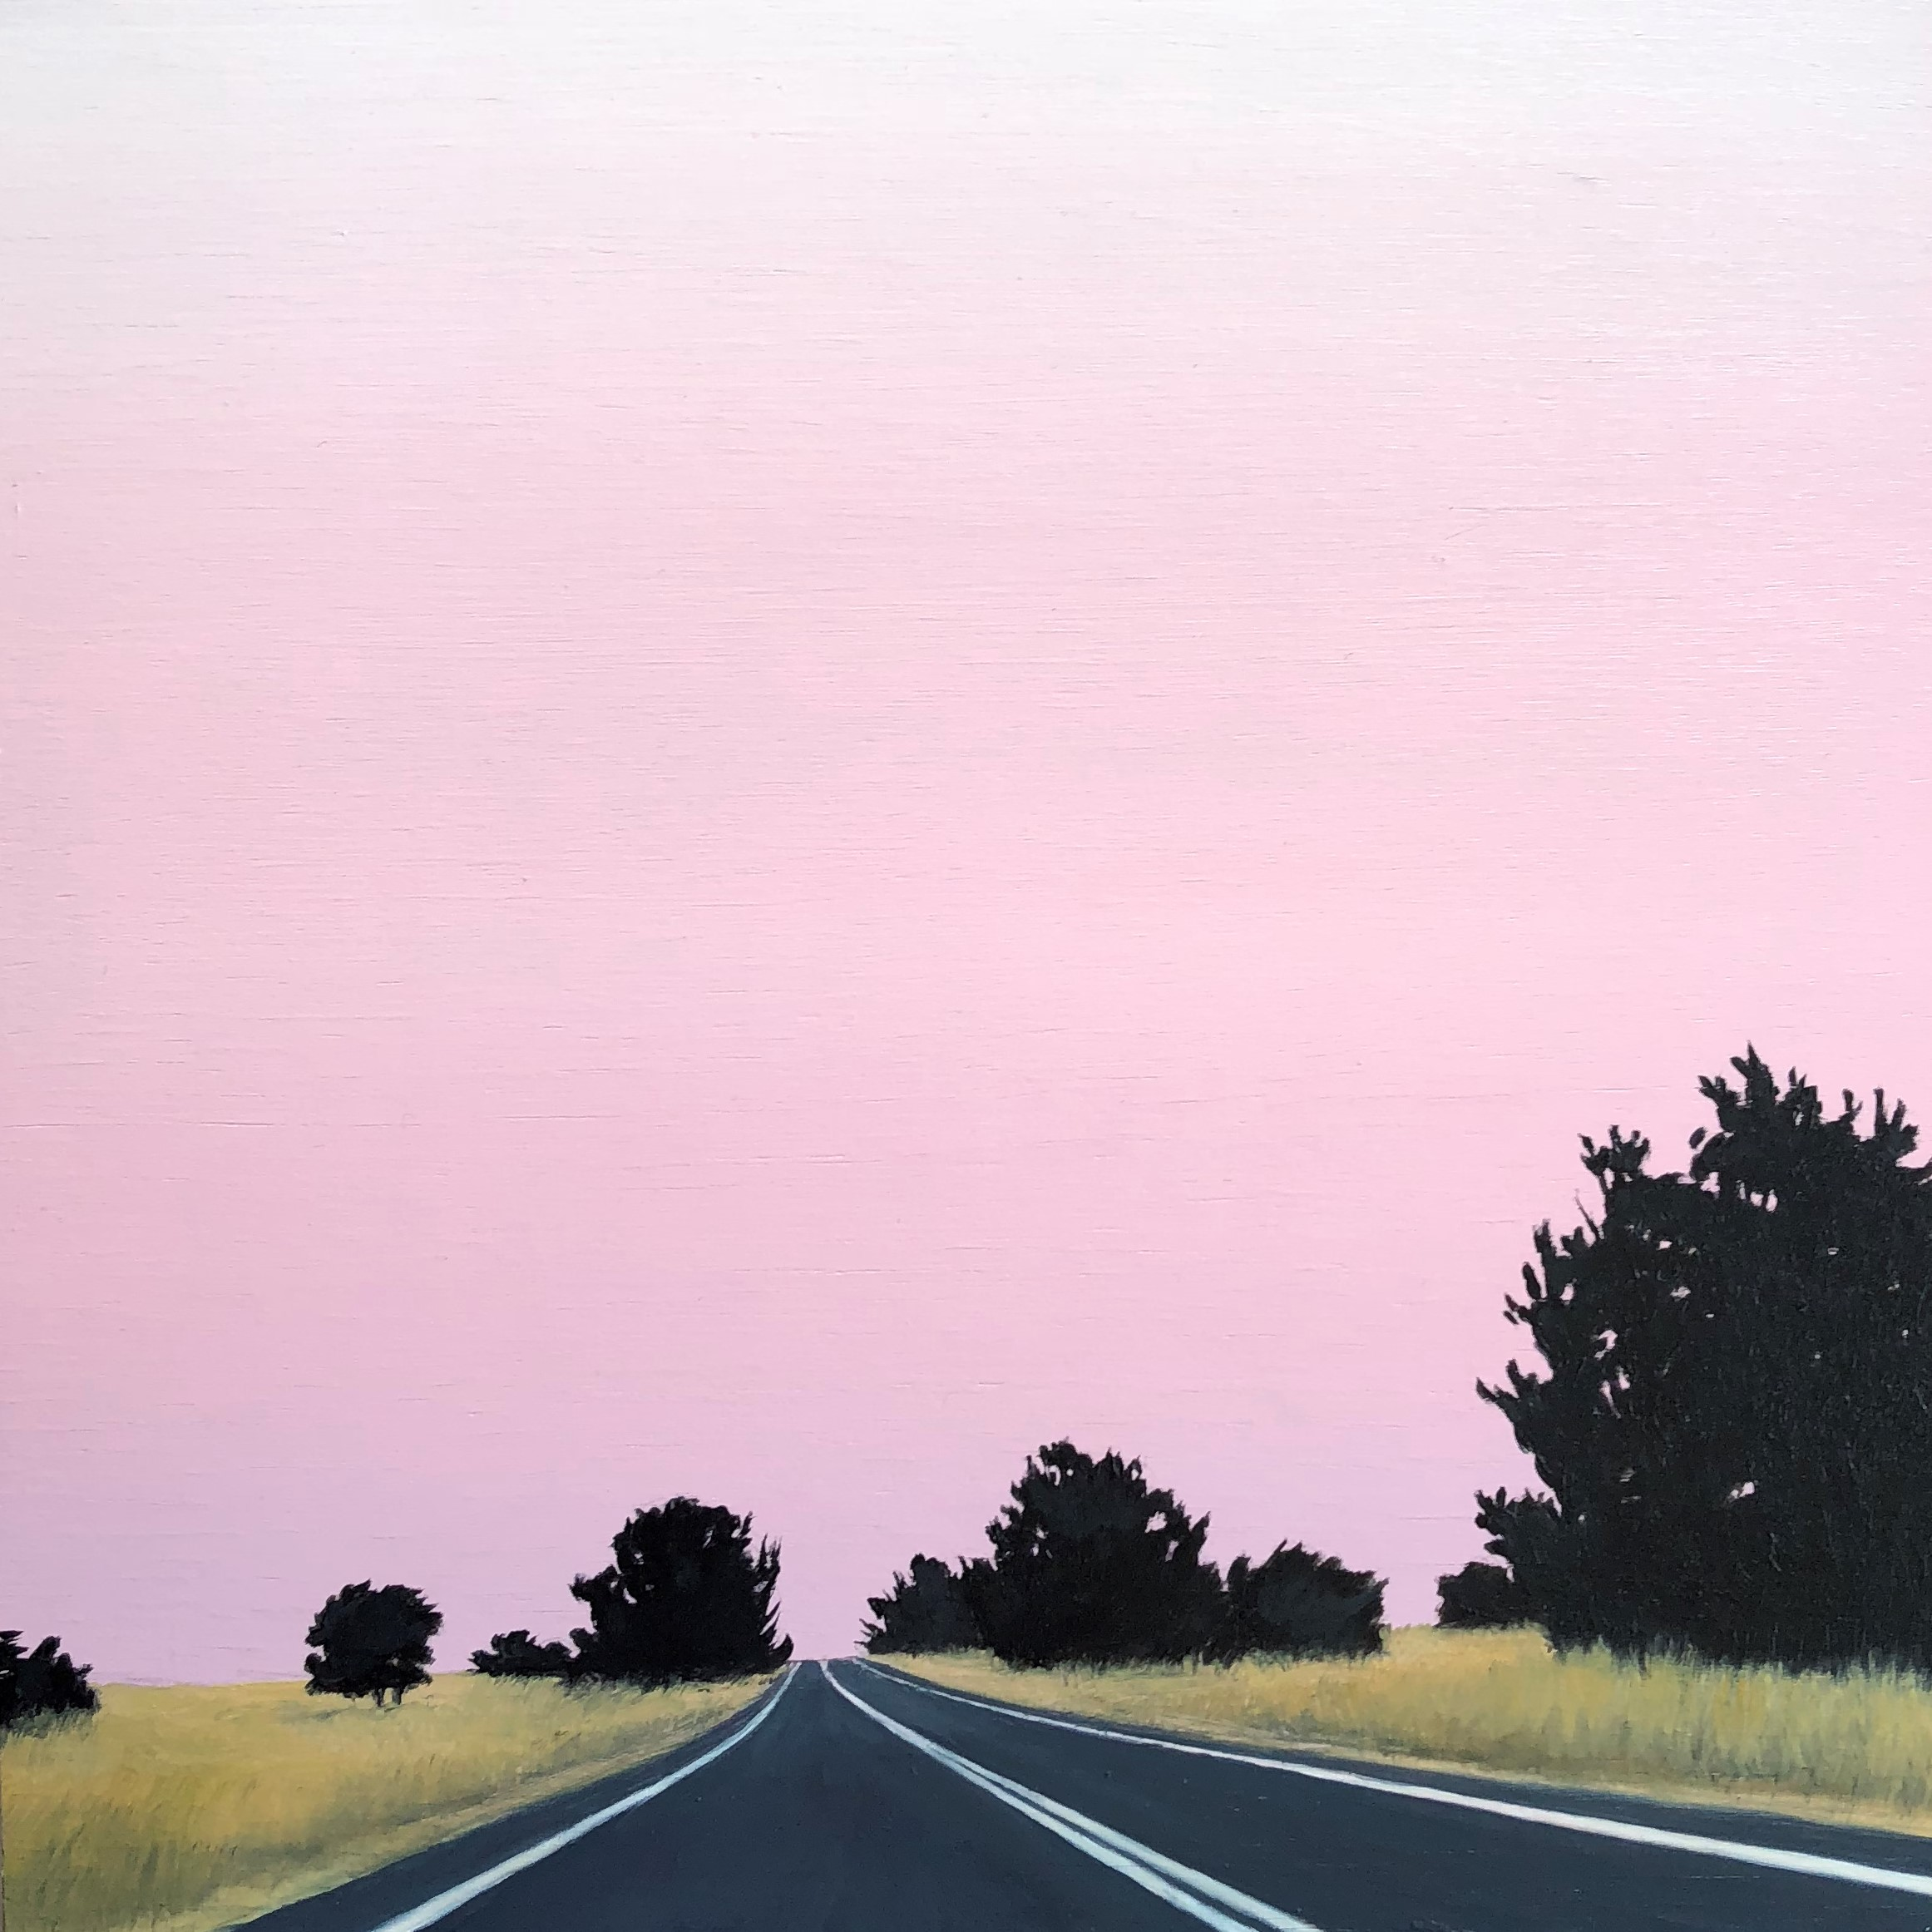 Straight Road, Pink Sky